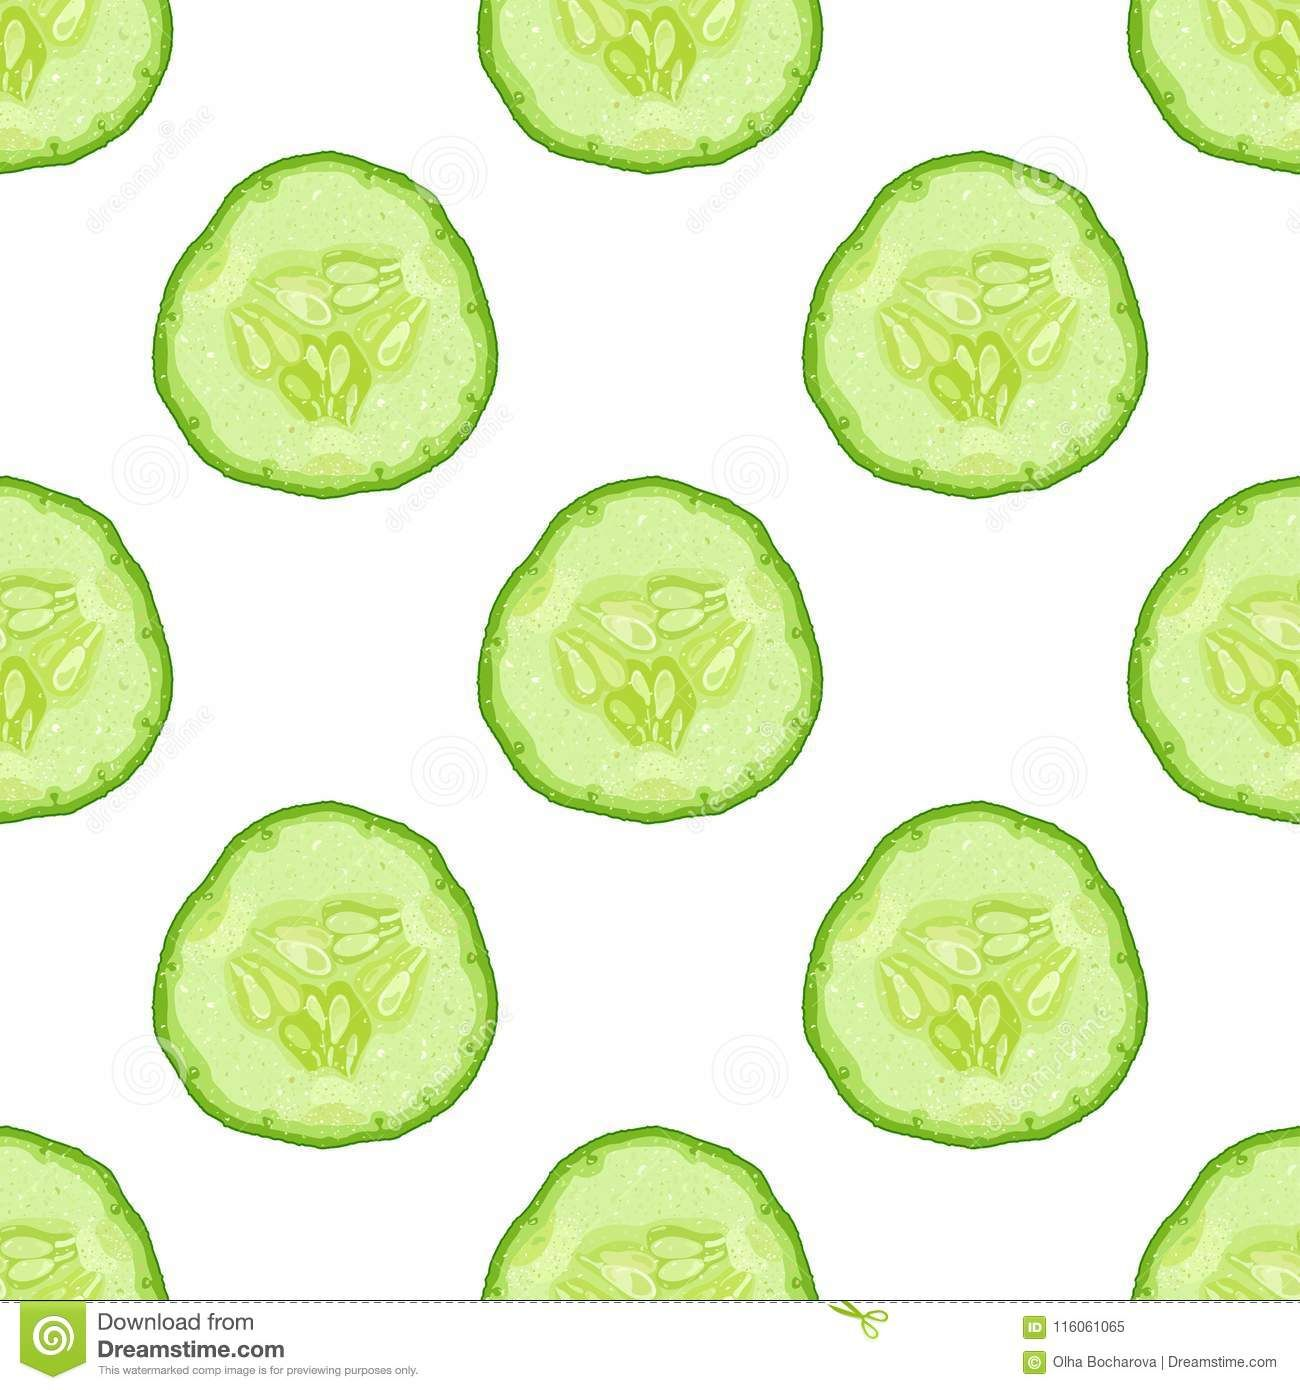 Vector Seamless Pattern Of Cucumber Slice On White Background Cucumber Seamless Patterns White Background